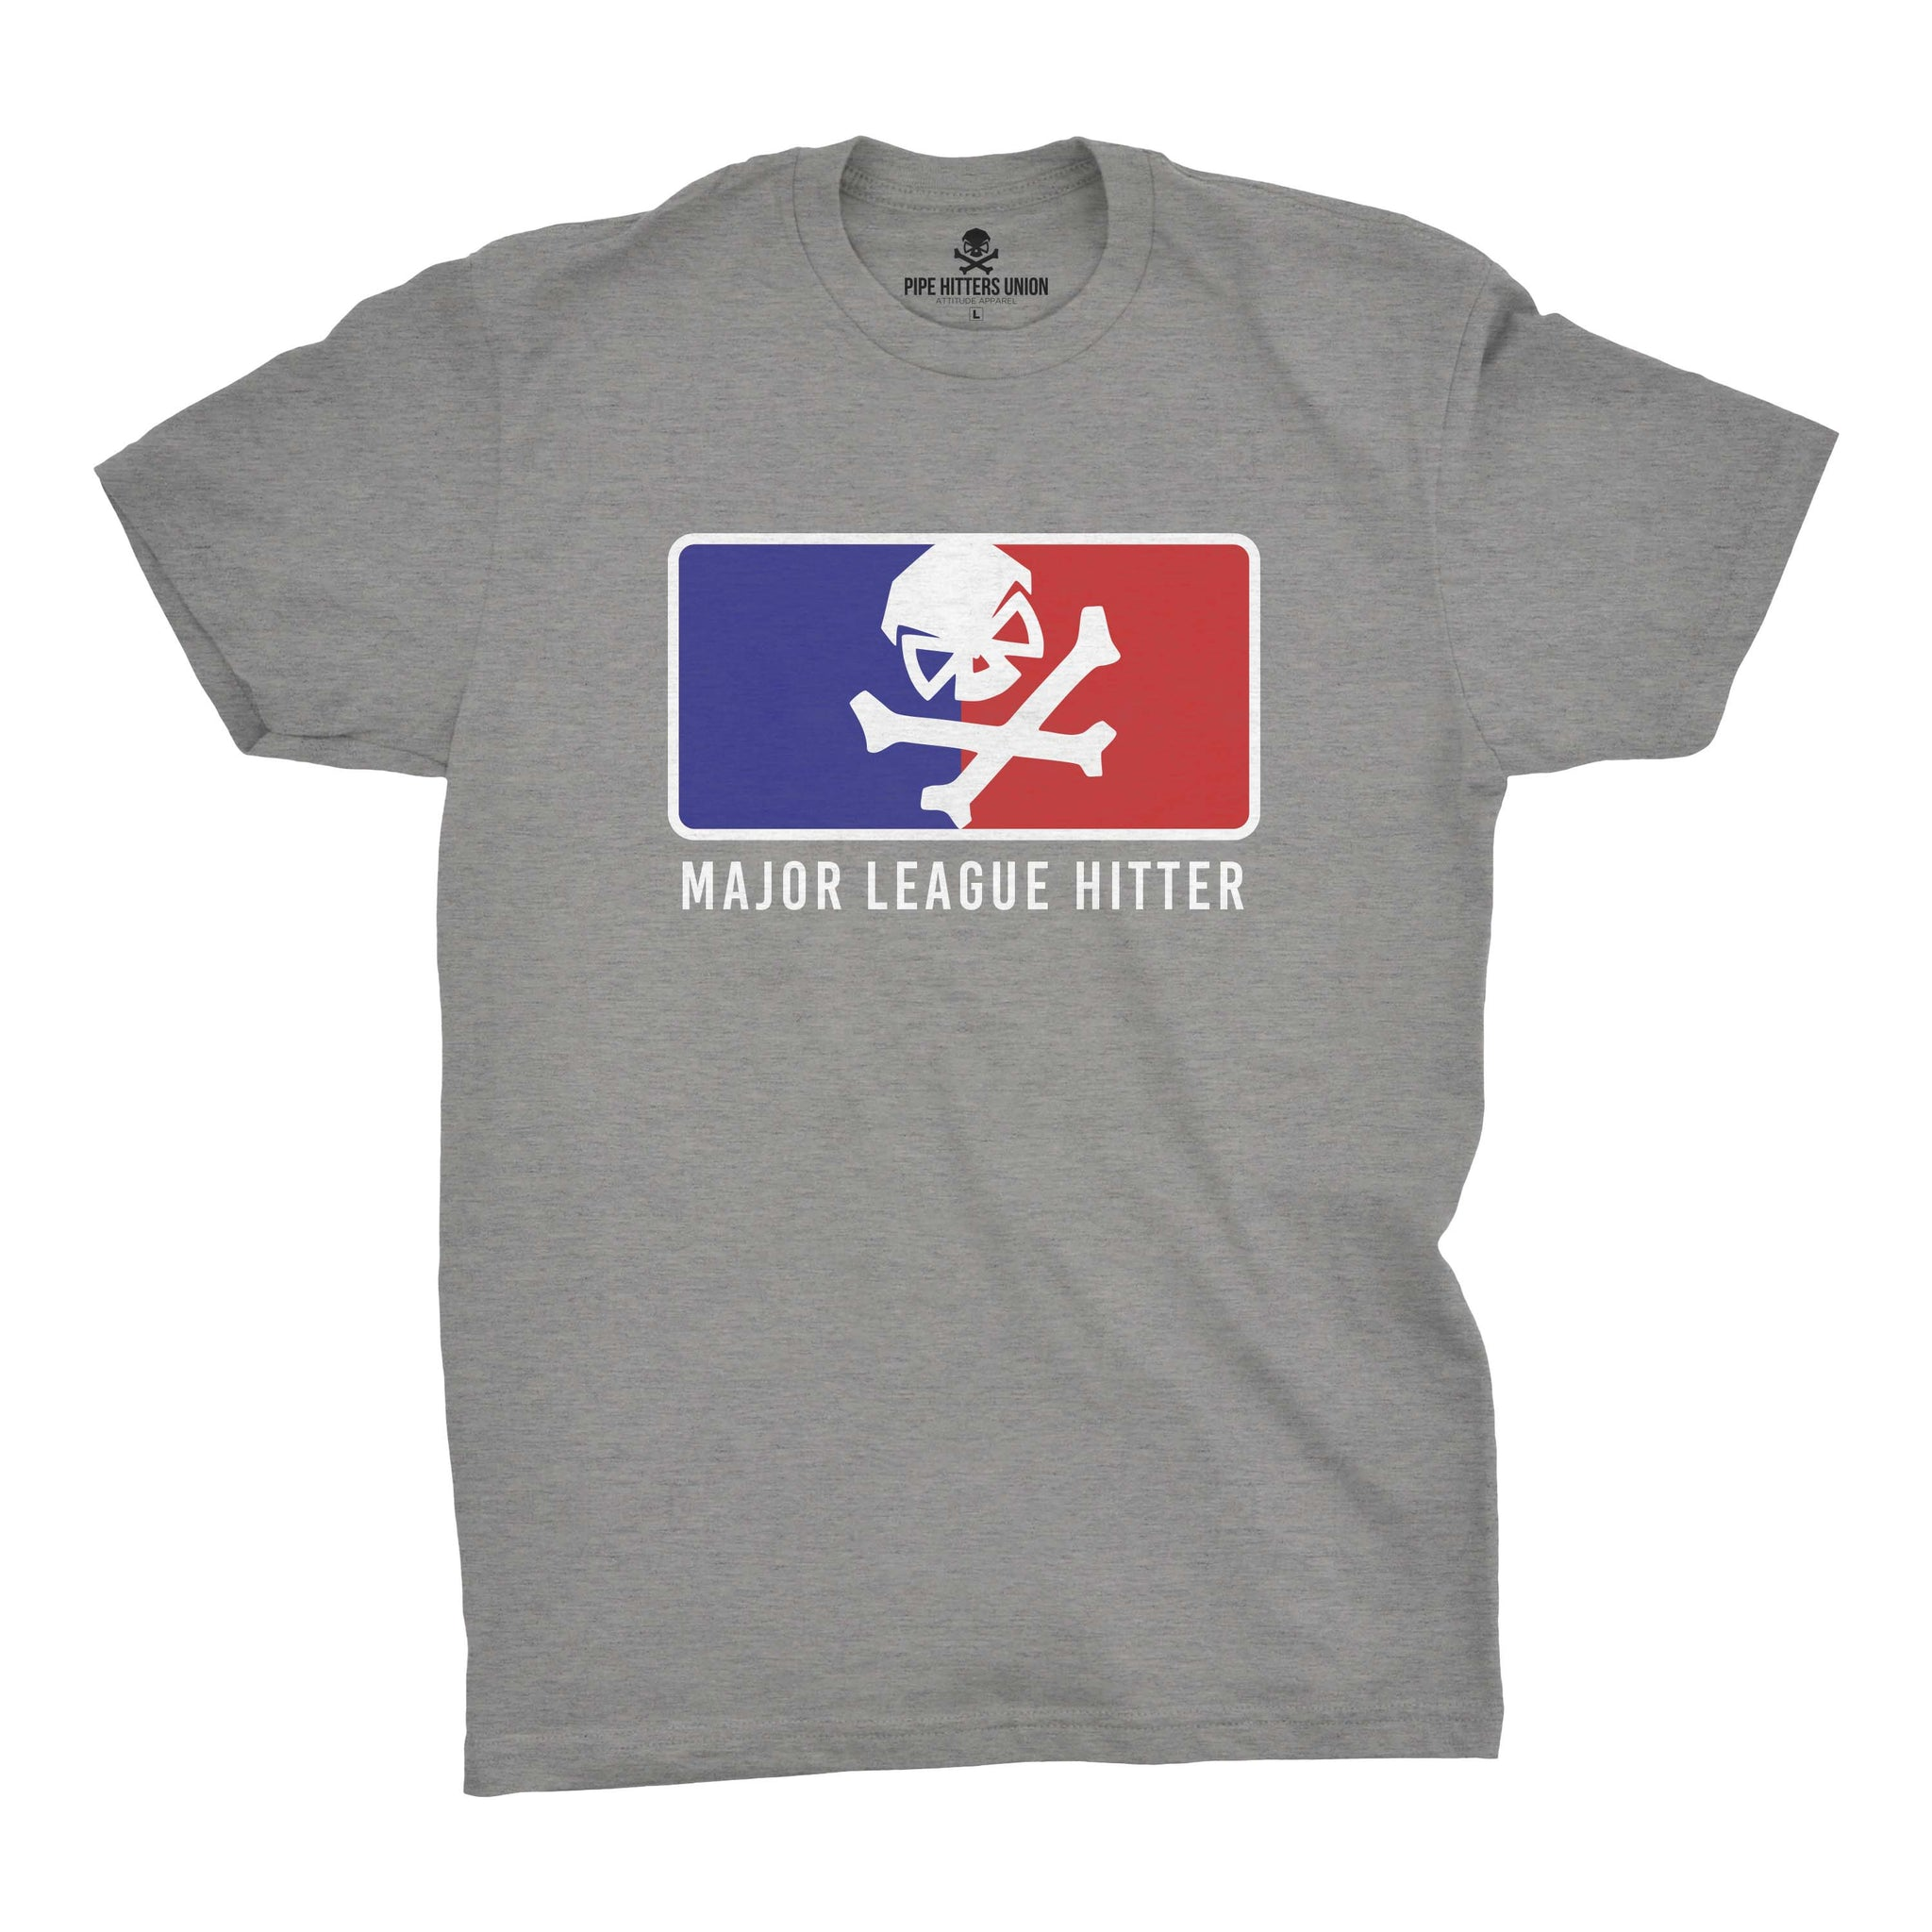 Major League Hitter - Grey/RWB - T-Shirts - Pipe Hitters Union